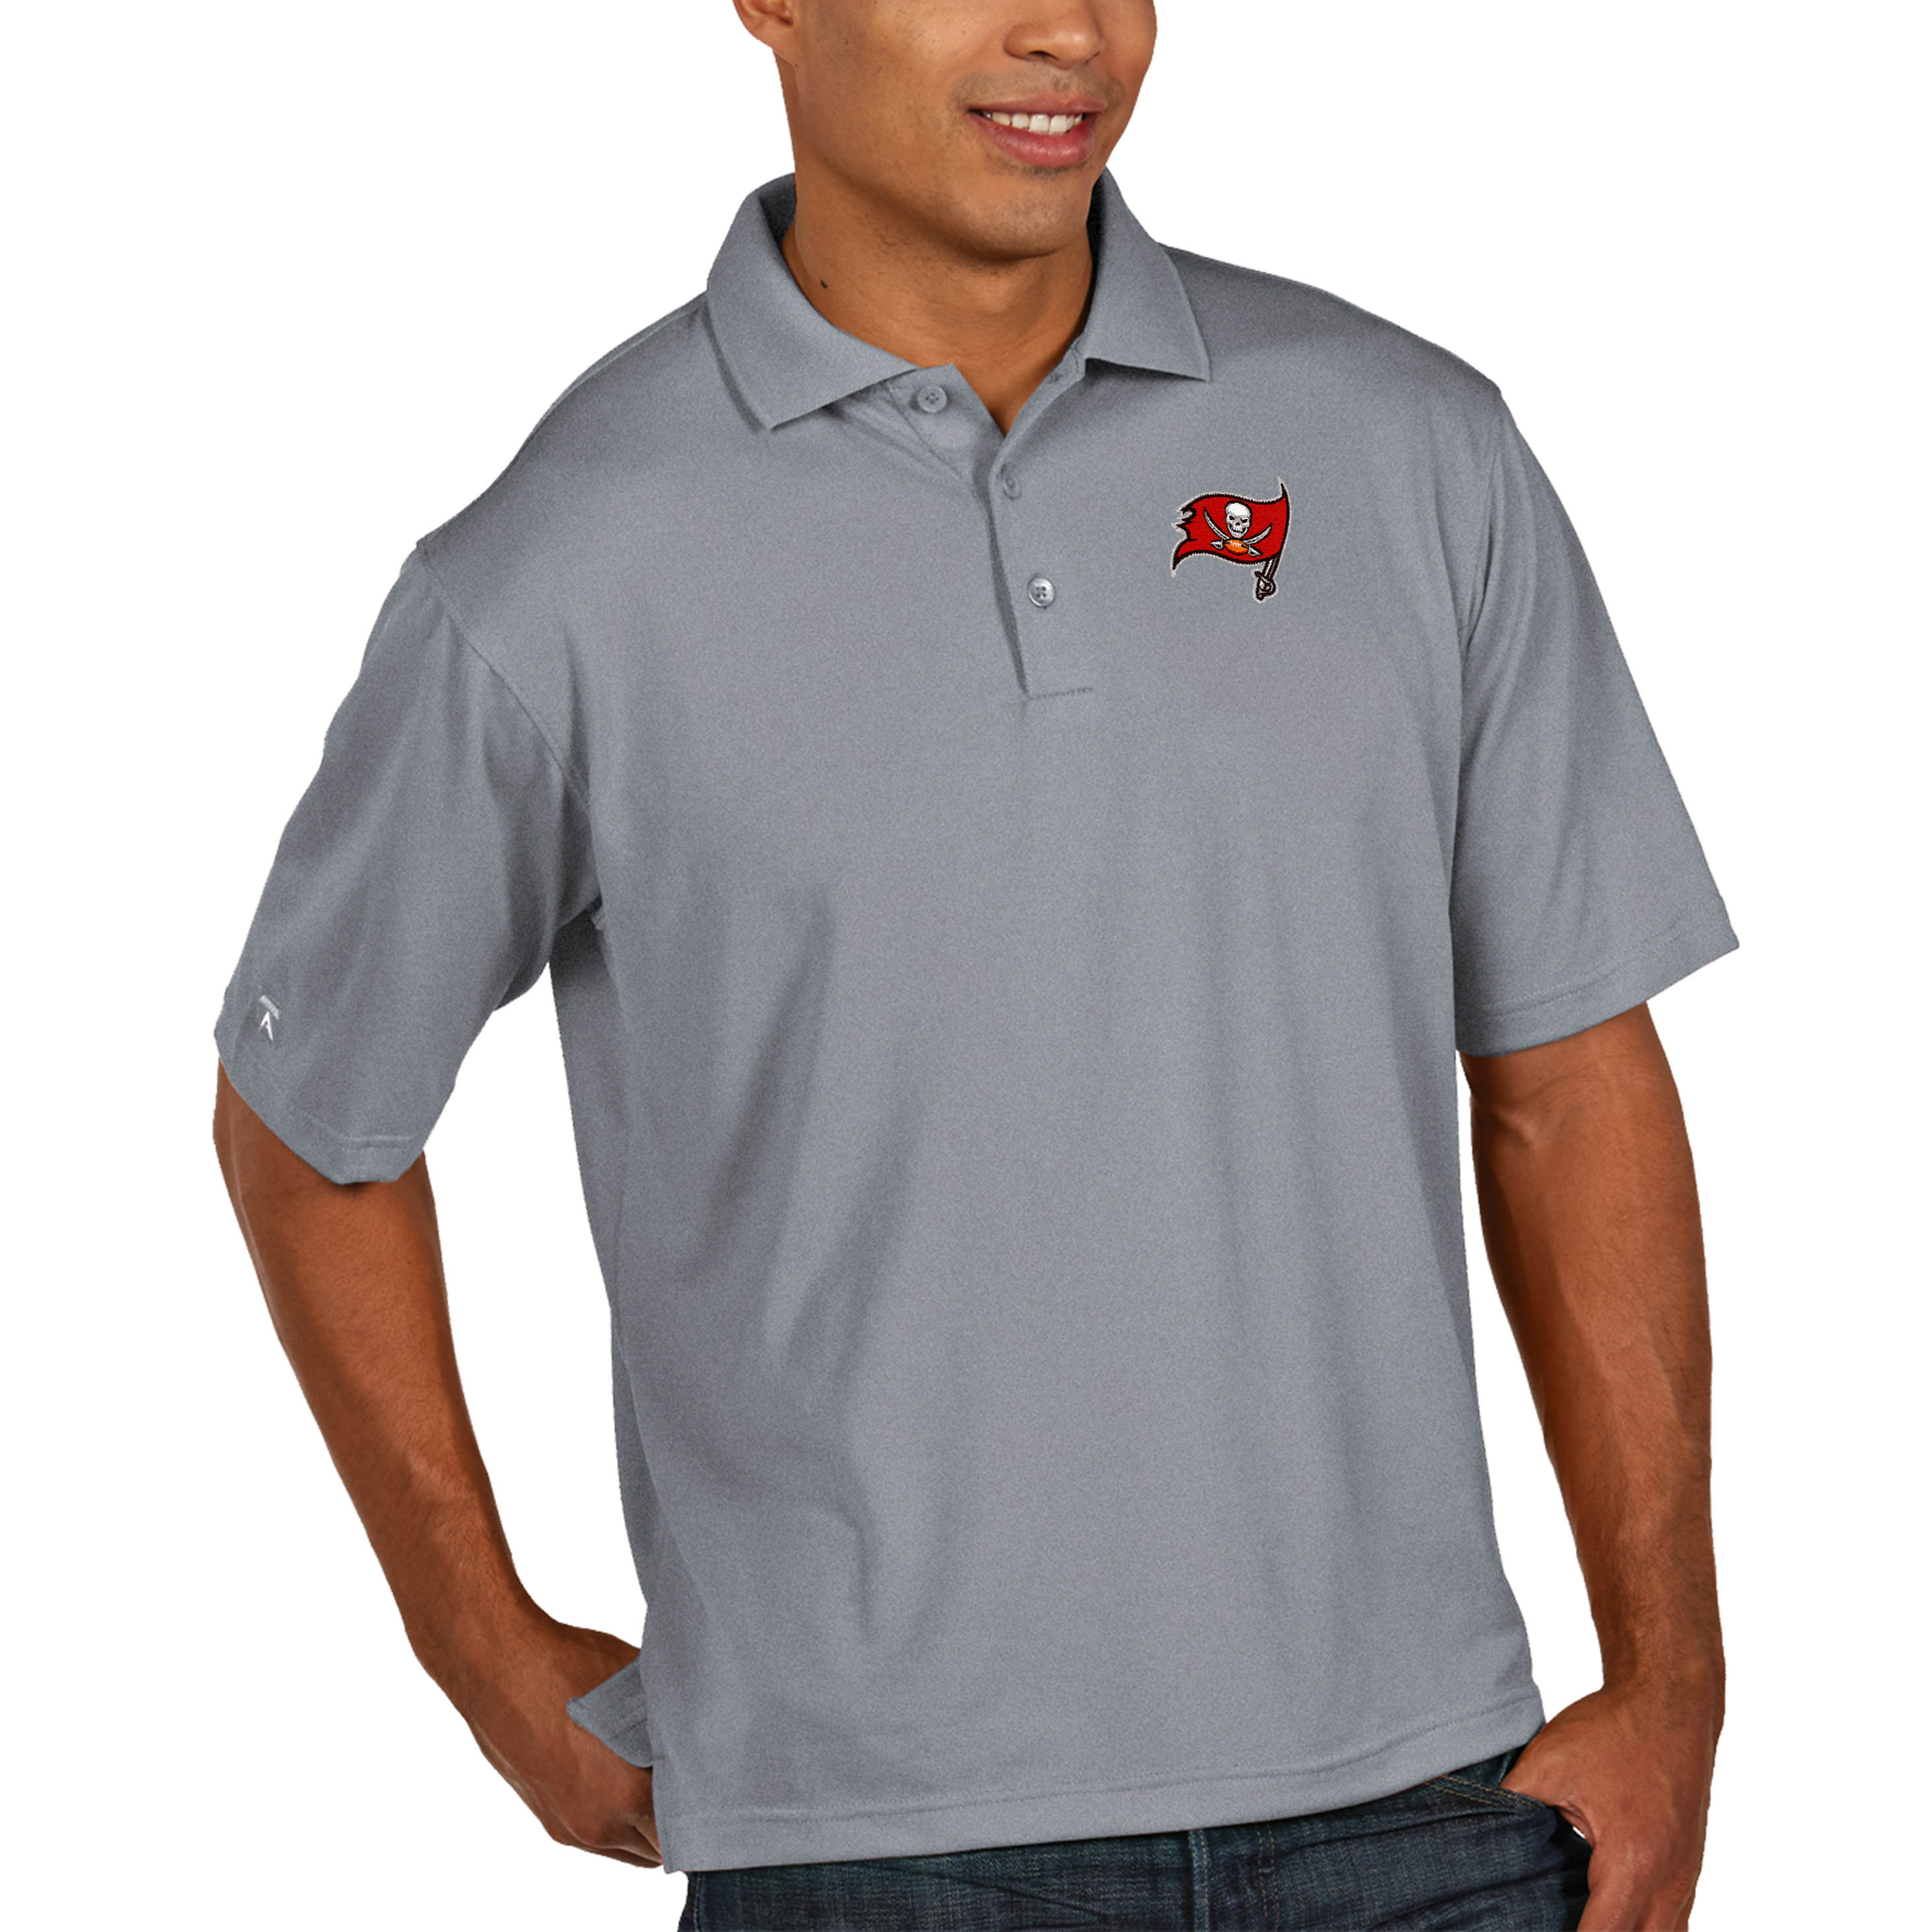 Tampa Bay Buccaneers Antigua Pique Xtra Lite Big & Tall Polo - Heather Gray